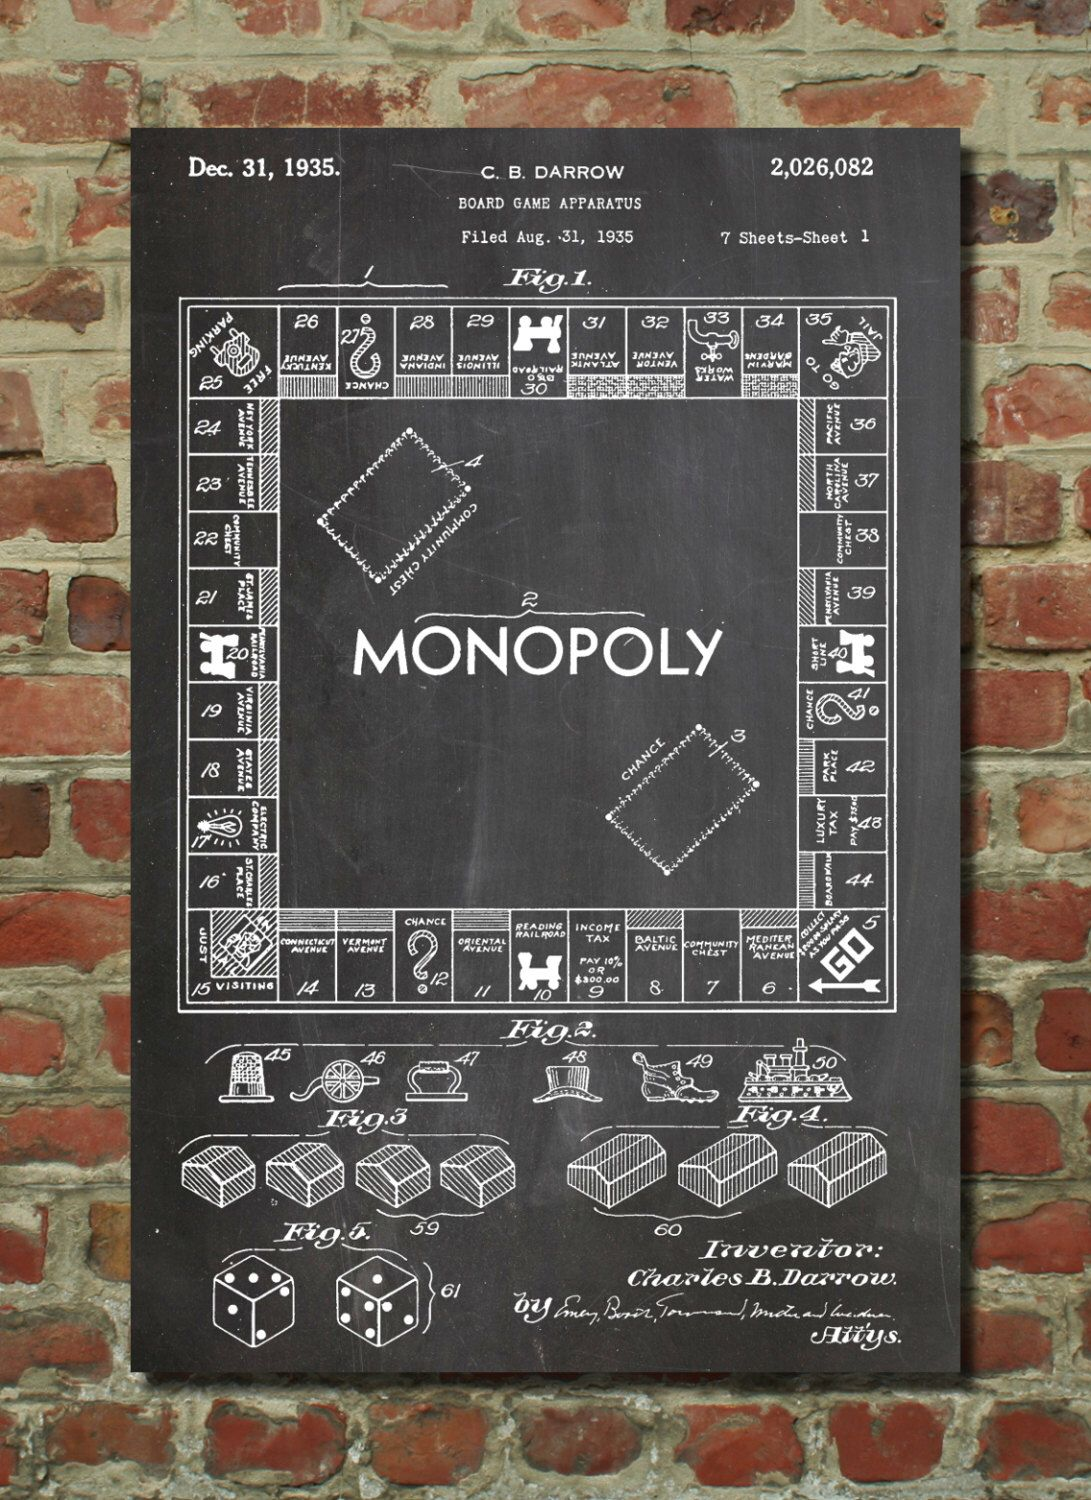 Monopoly poster board game art monopoly blueprint board games monopoly patent poster board game art monopoly blueprint board games pp0131 z1016 malvernweather Gallery